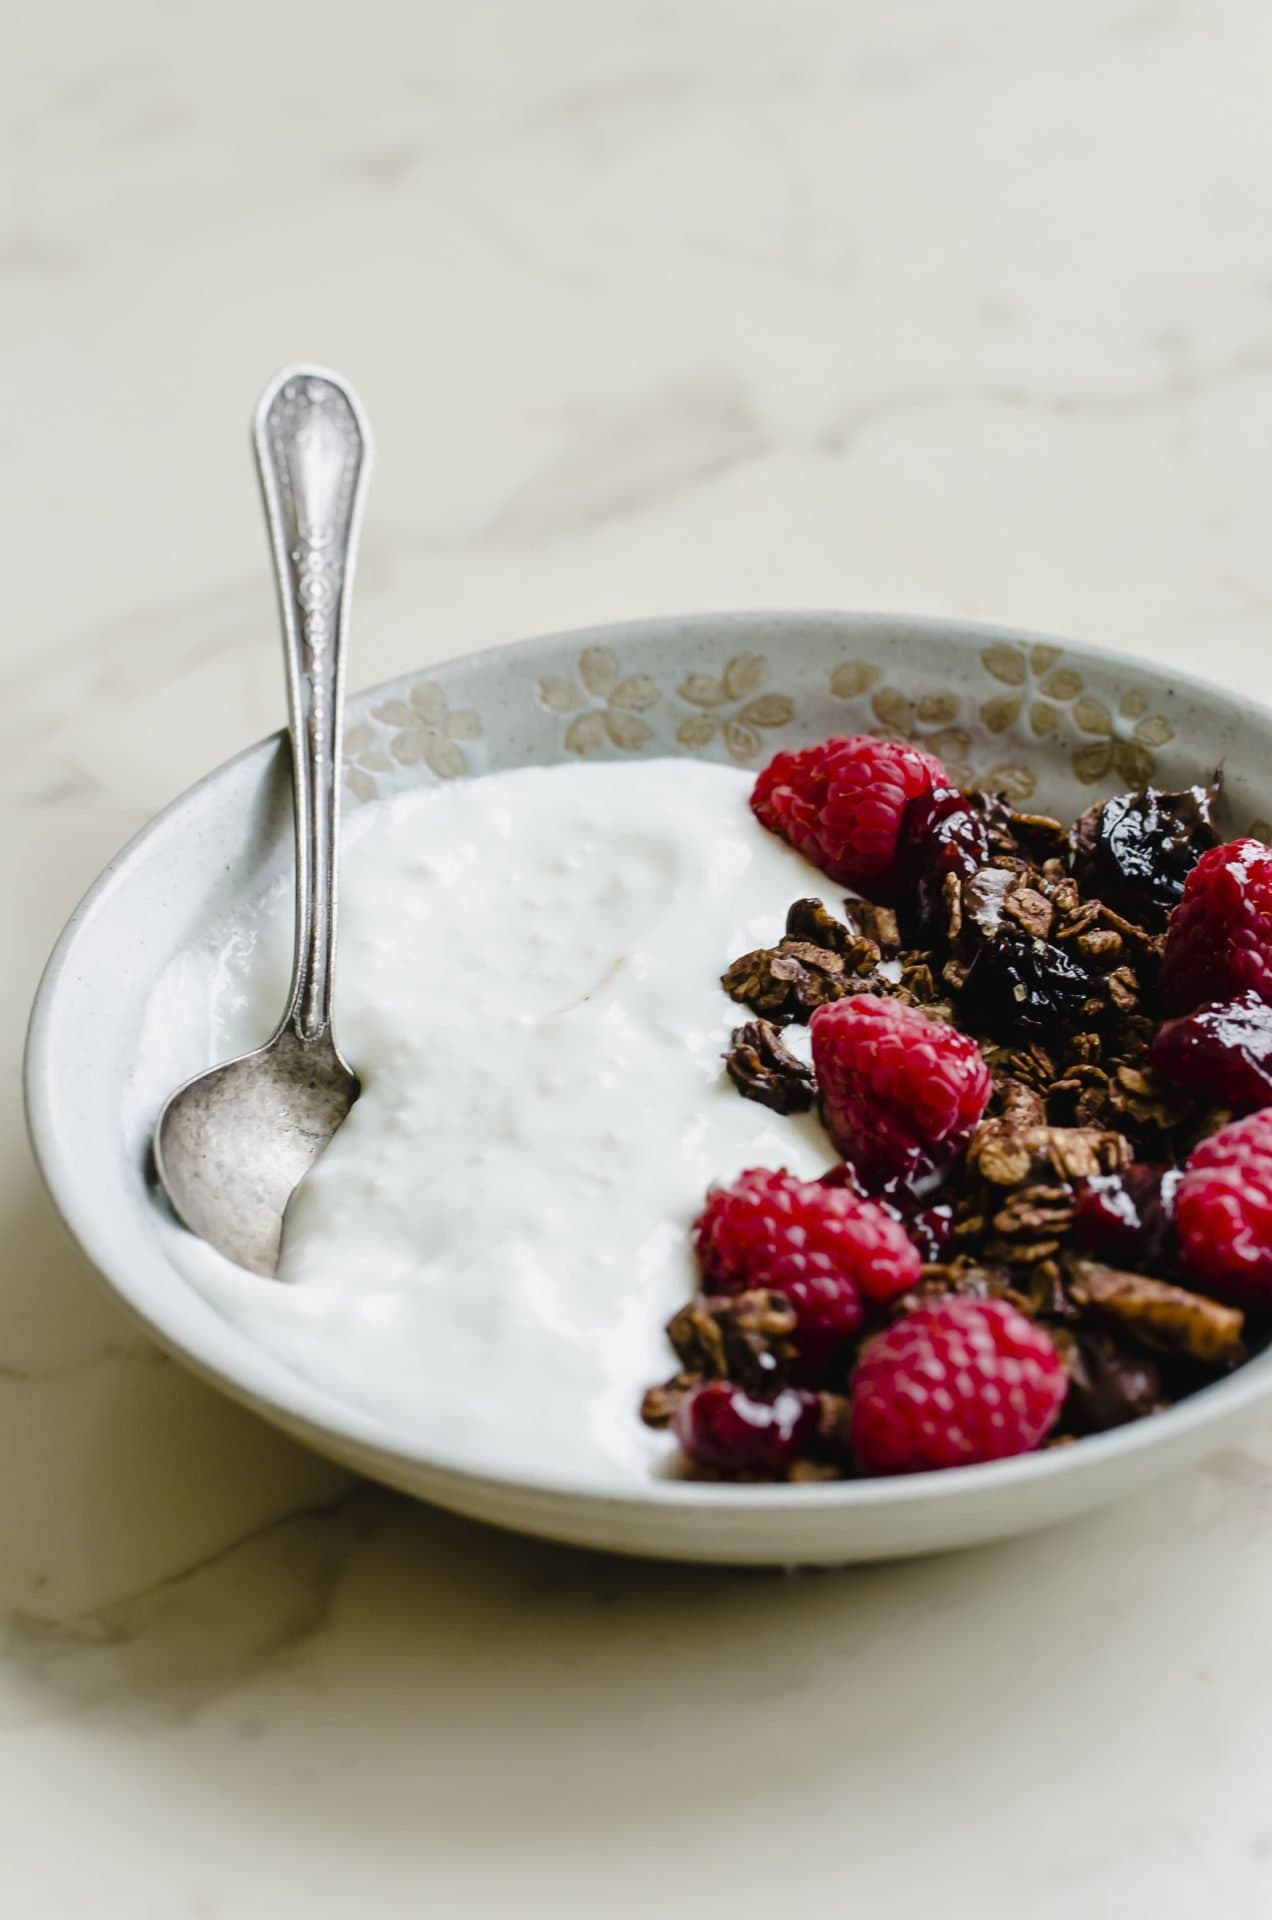 A gray stone bowl of yogurt topped with chocolate granola and raspberries with a spoon on the side.